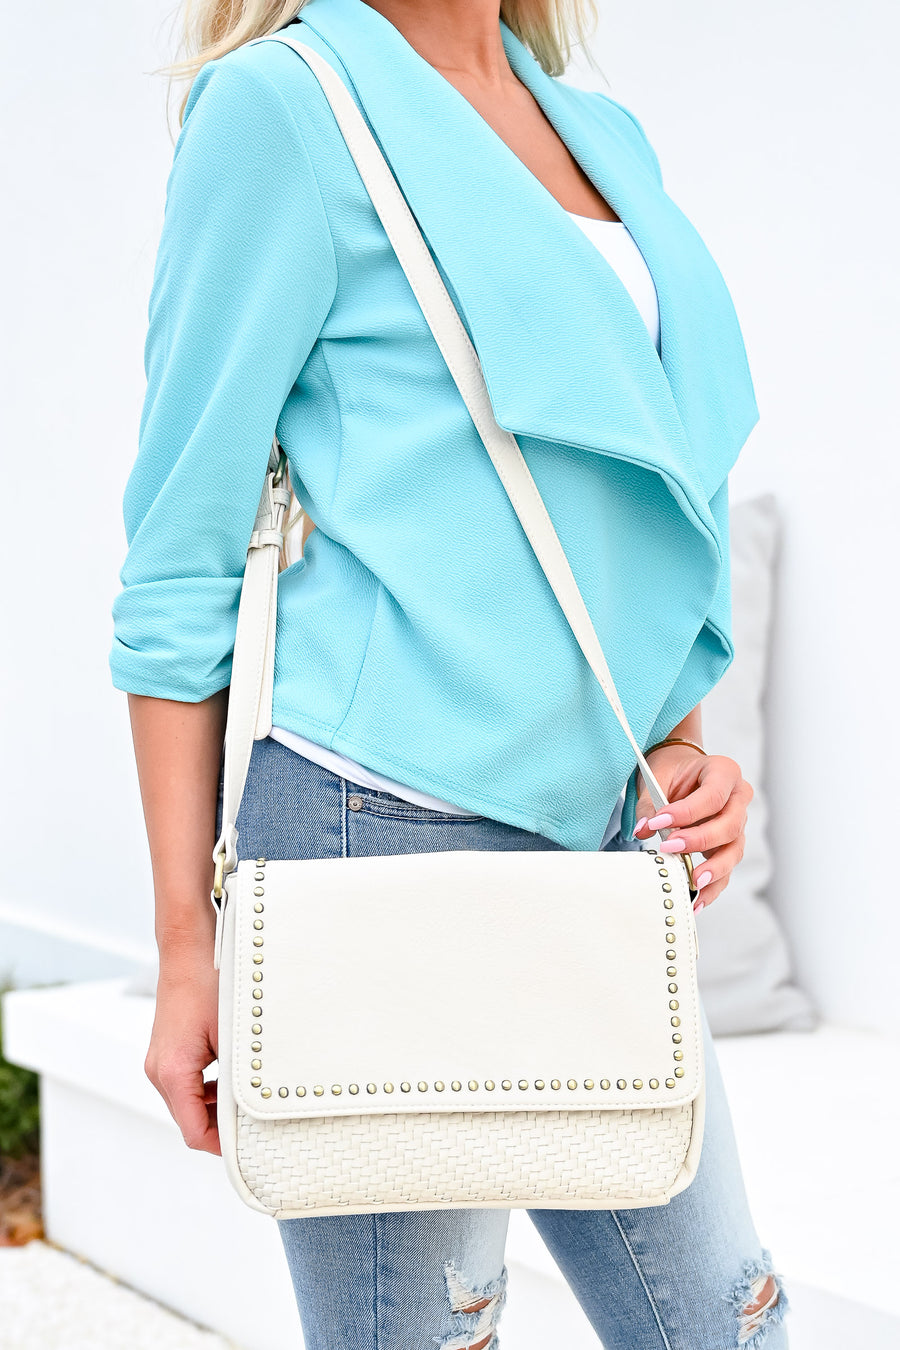 Cassie Crossbody Purse - Bone womens casual vegan leather crossbody purse with studded details closet candy frontb